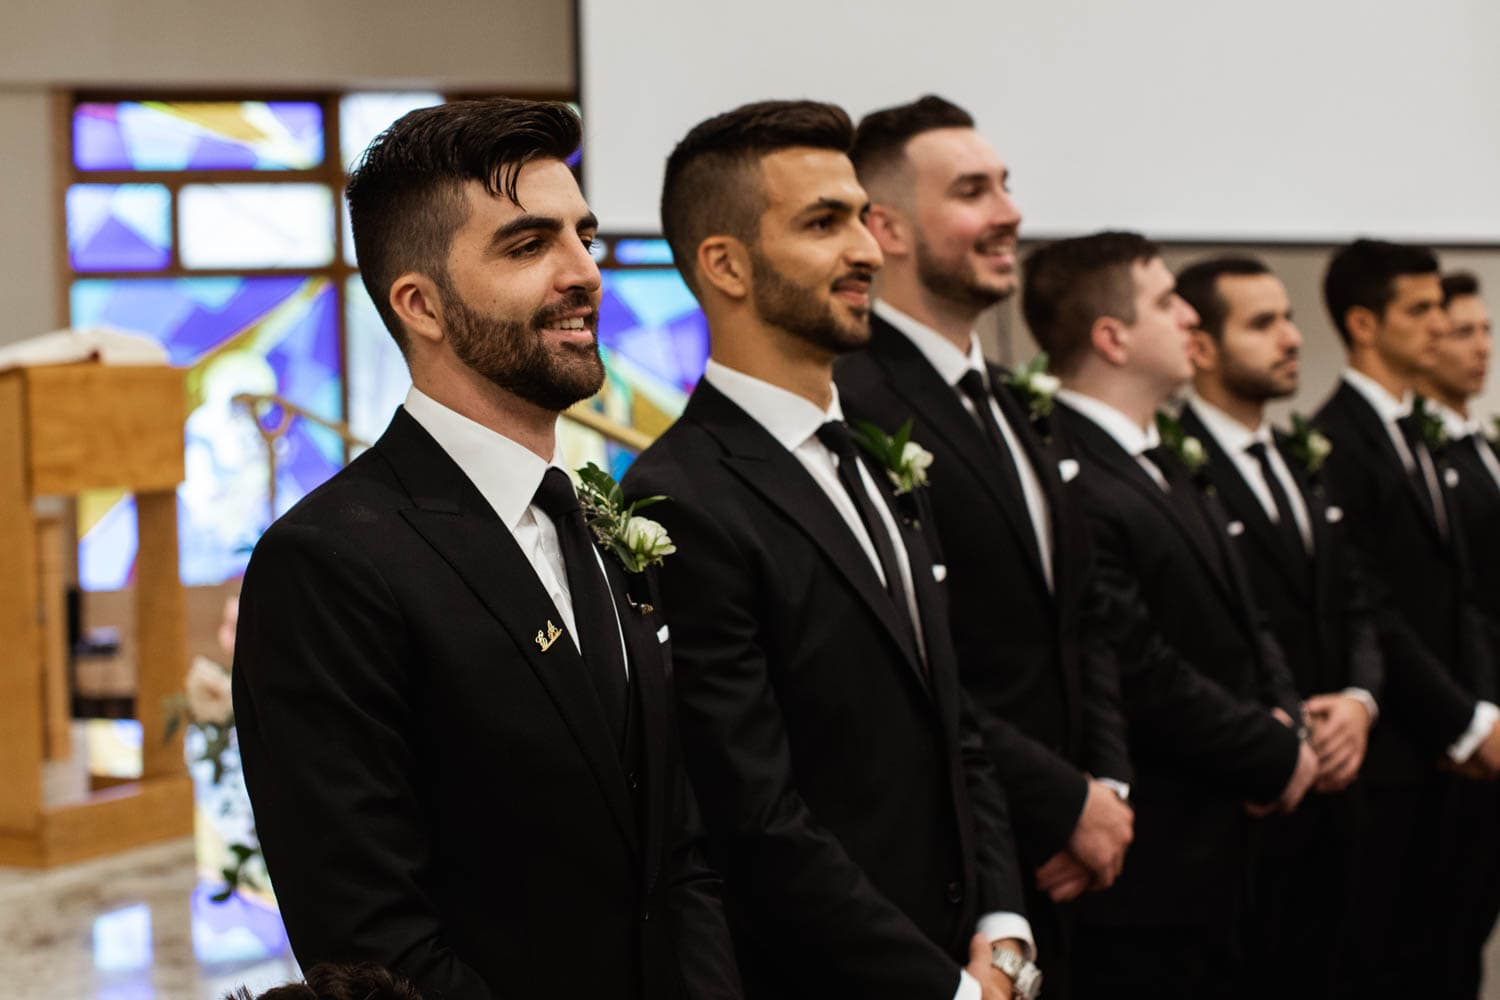 groomsmen at the alter